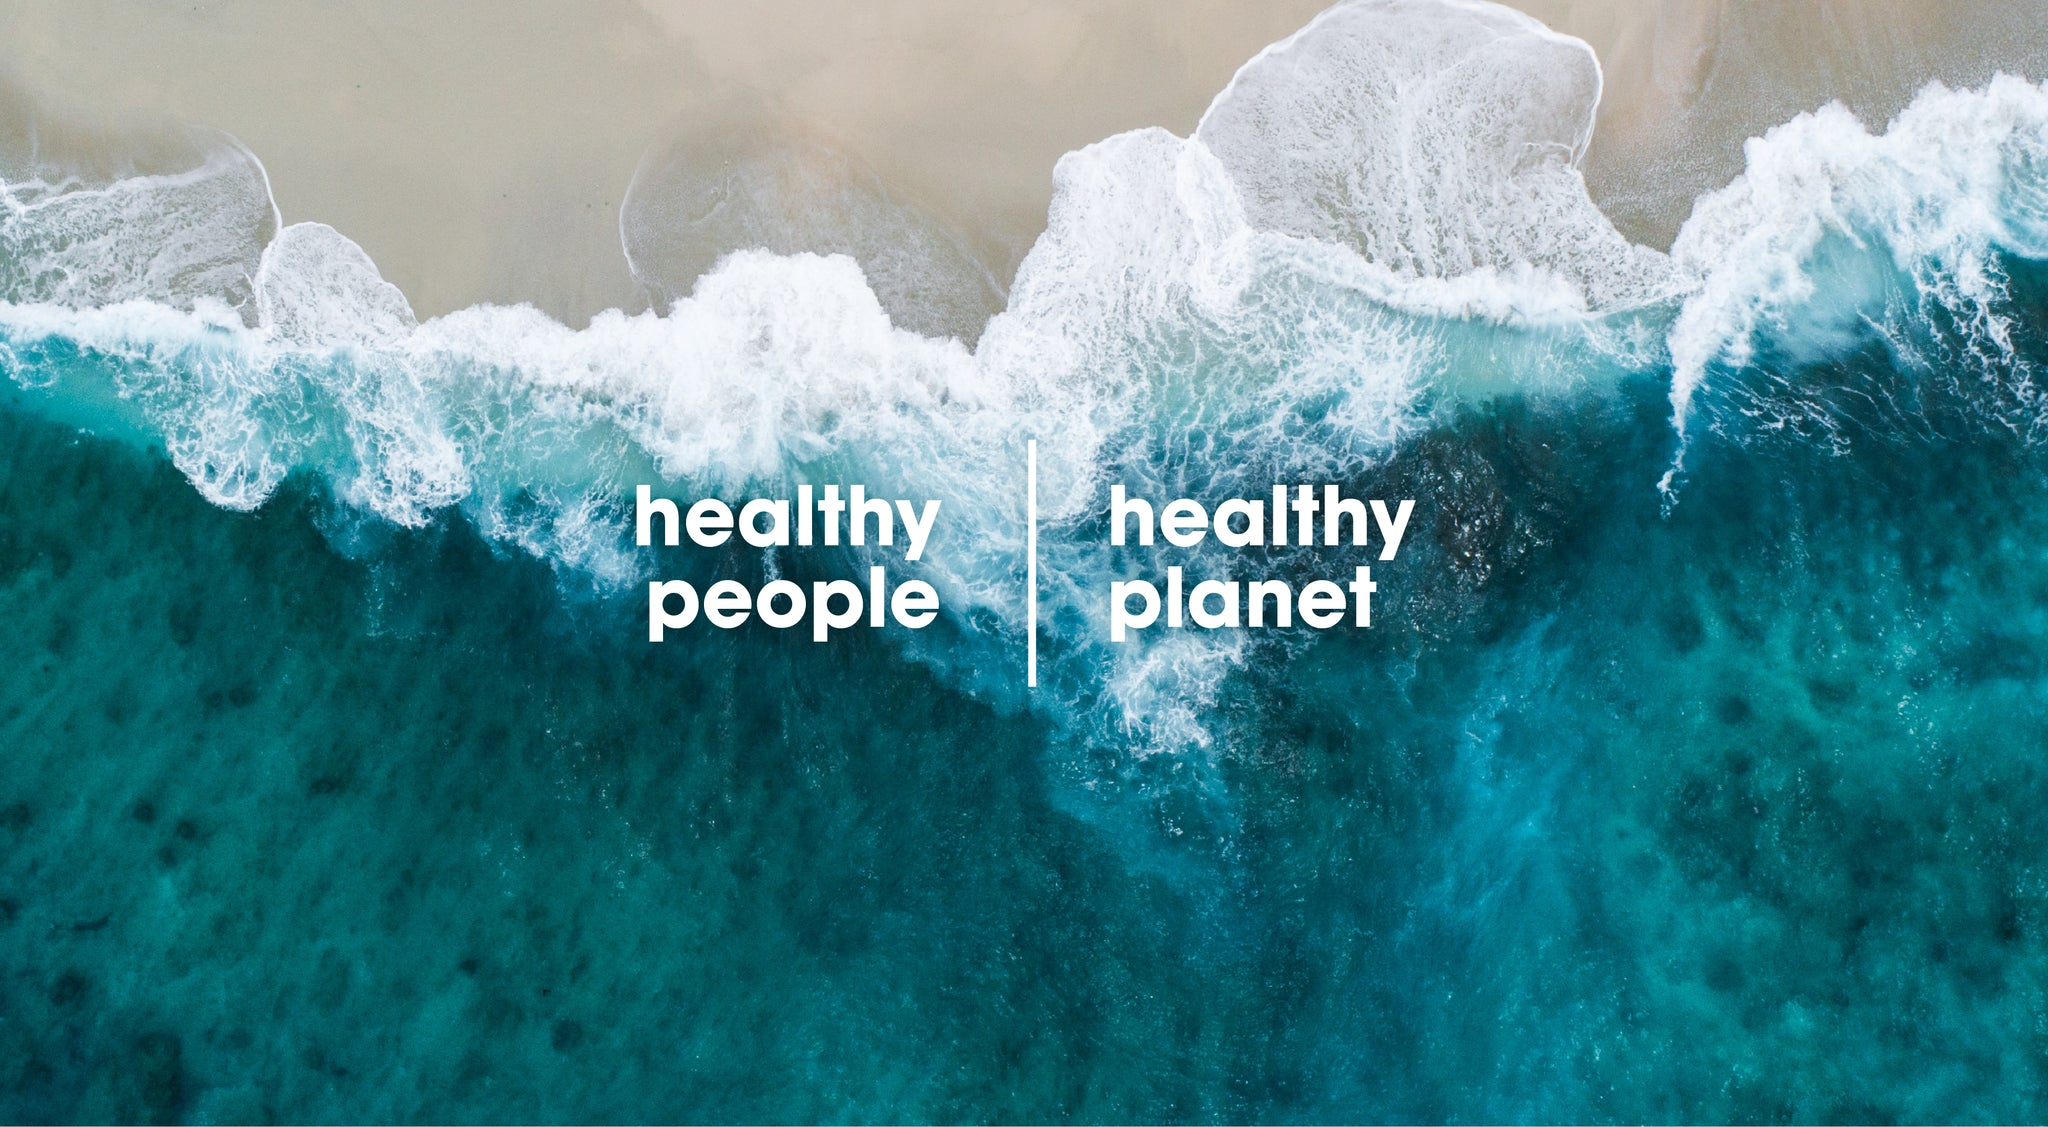 Healthy people. Healthy Planet.